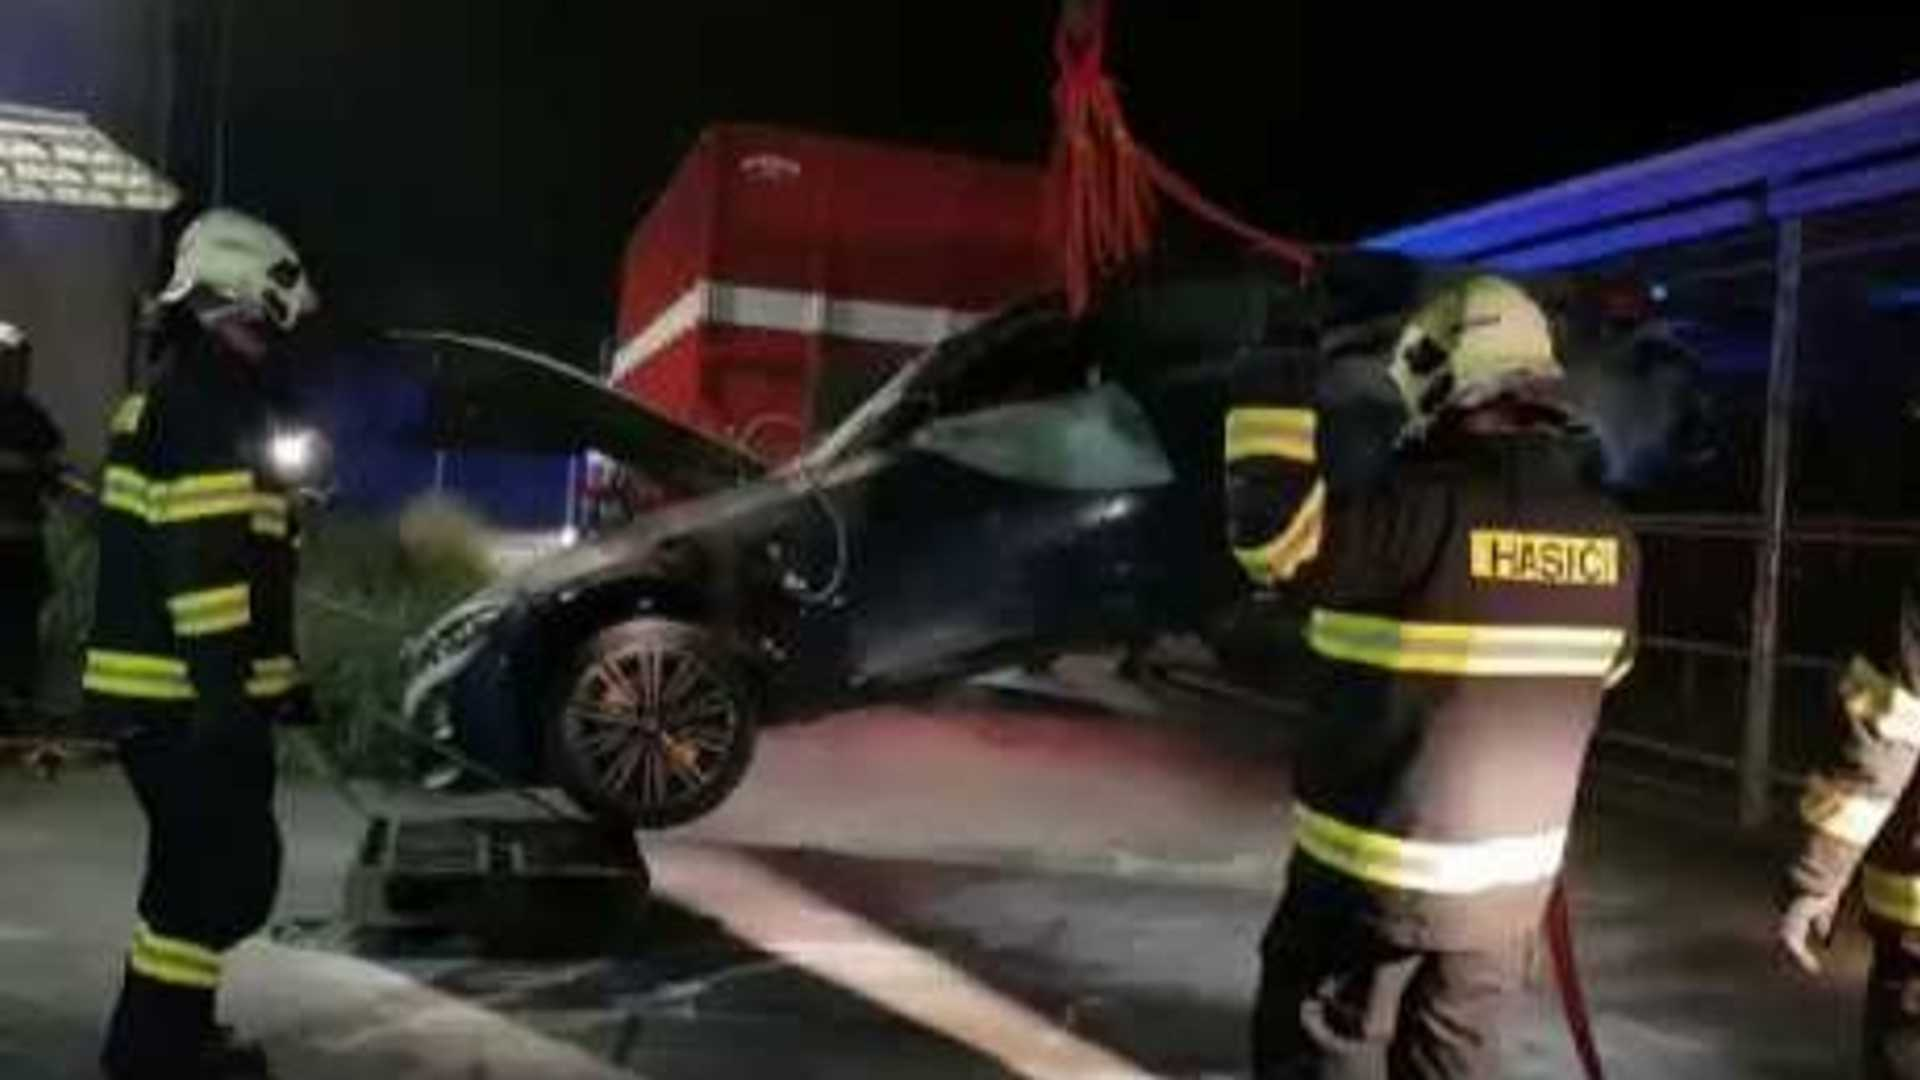 2020 BMW 330e PHEV catches fire while charging in Czech Republic